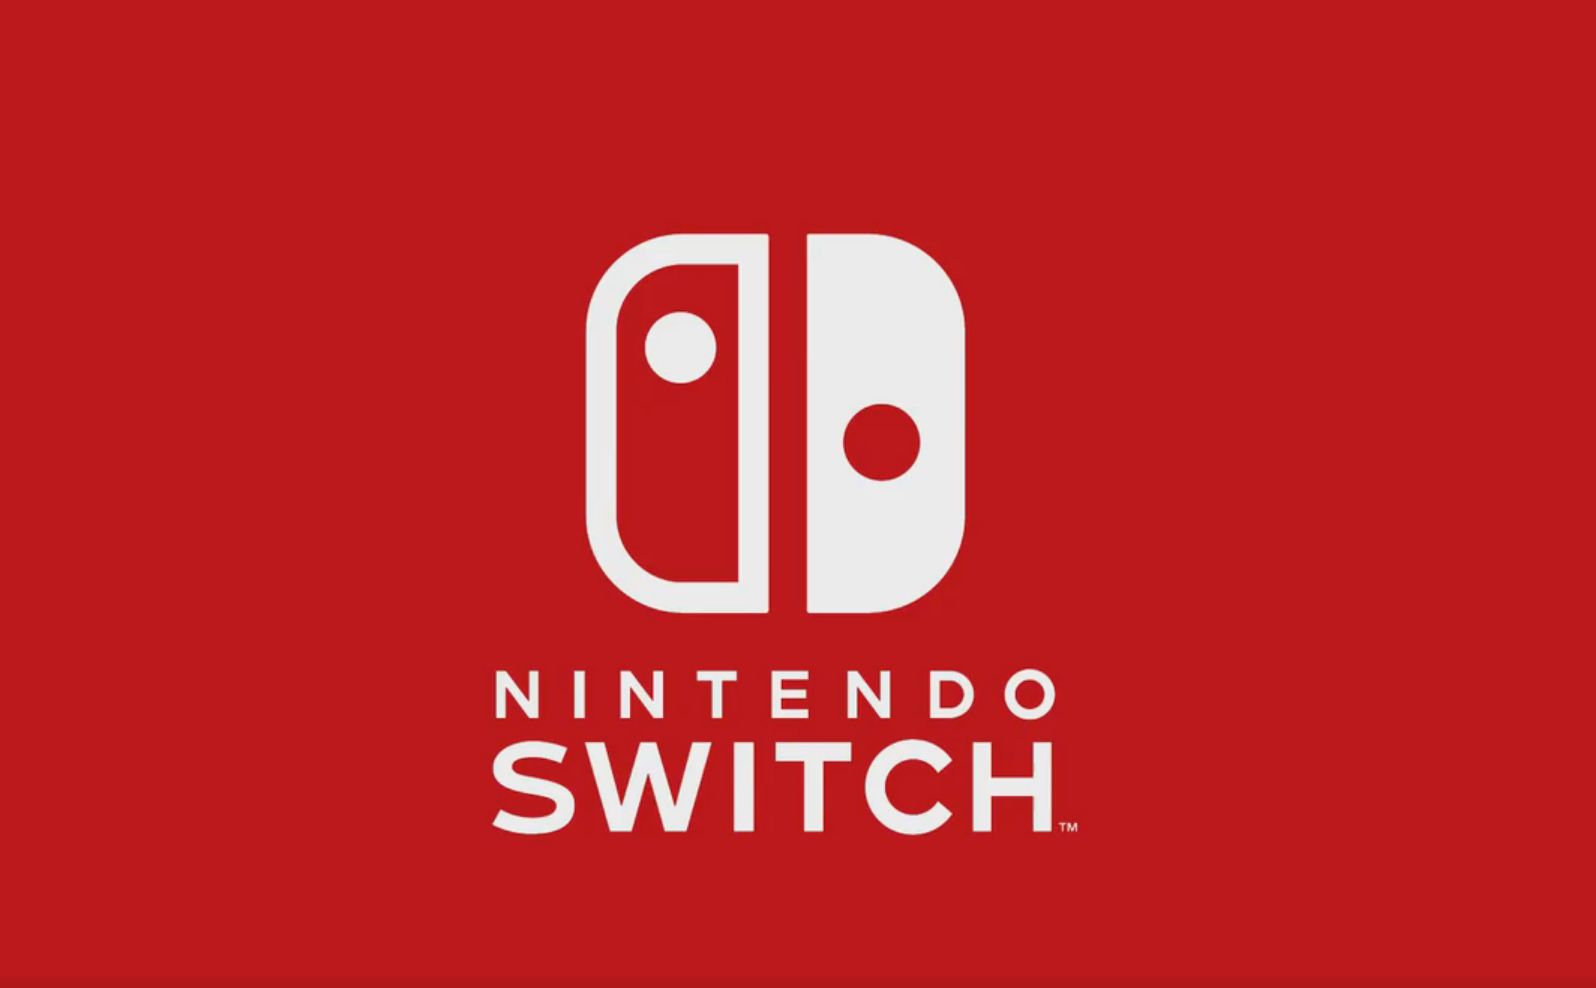 What Is The Symbol For Switch